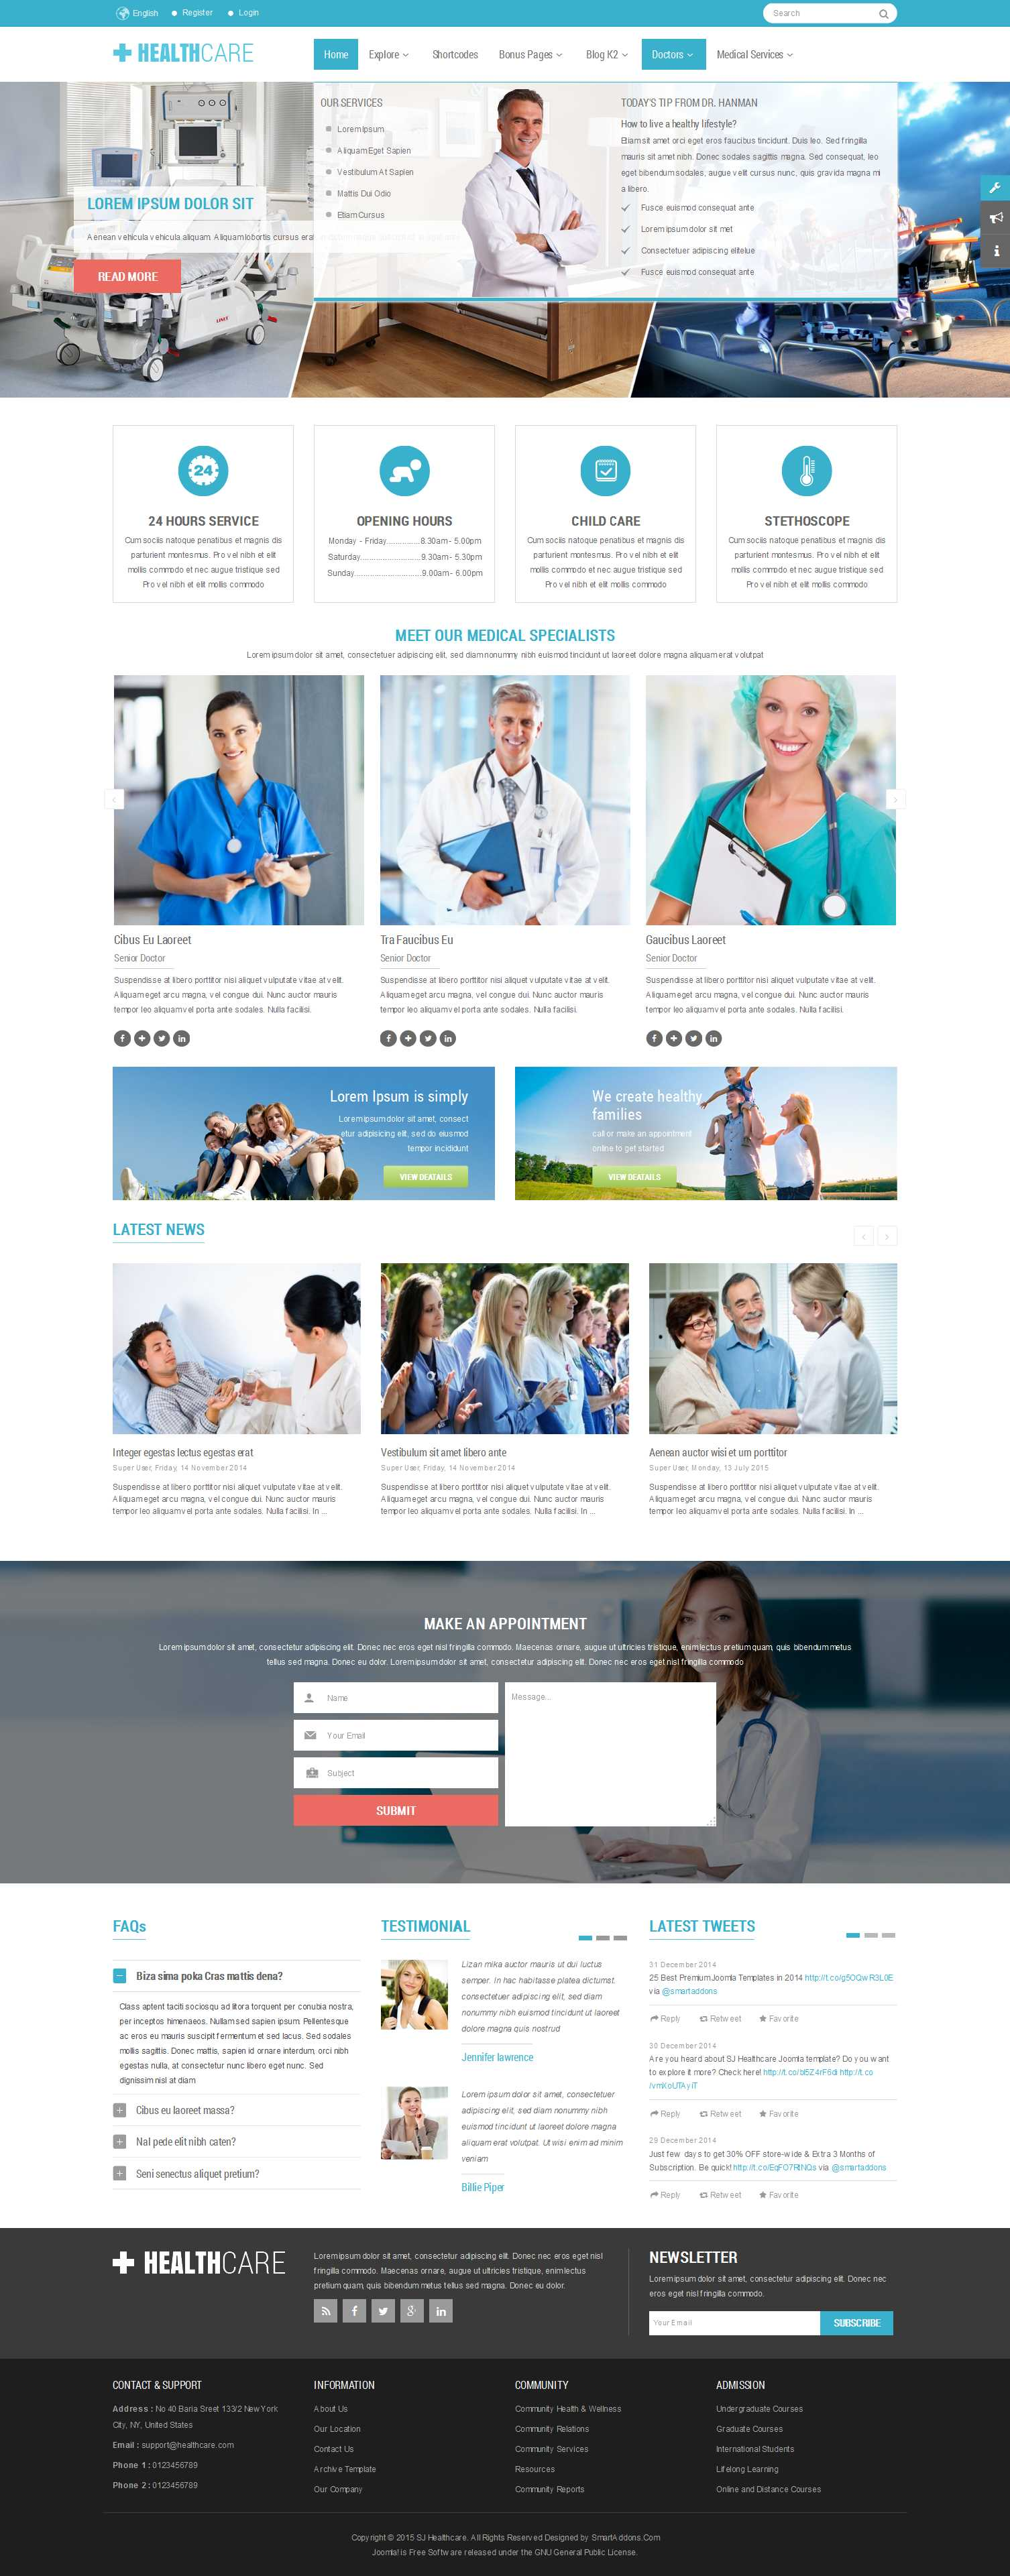 SJ Healthcare - Responsive Joomla Medical Health Template - 06_mega-menu-compressed.jpg